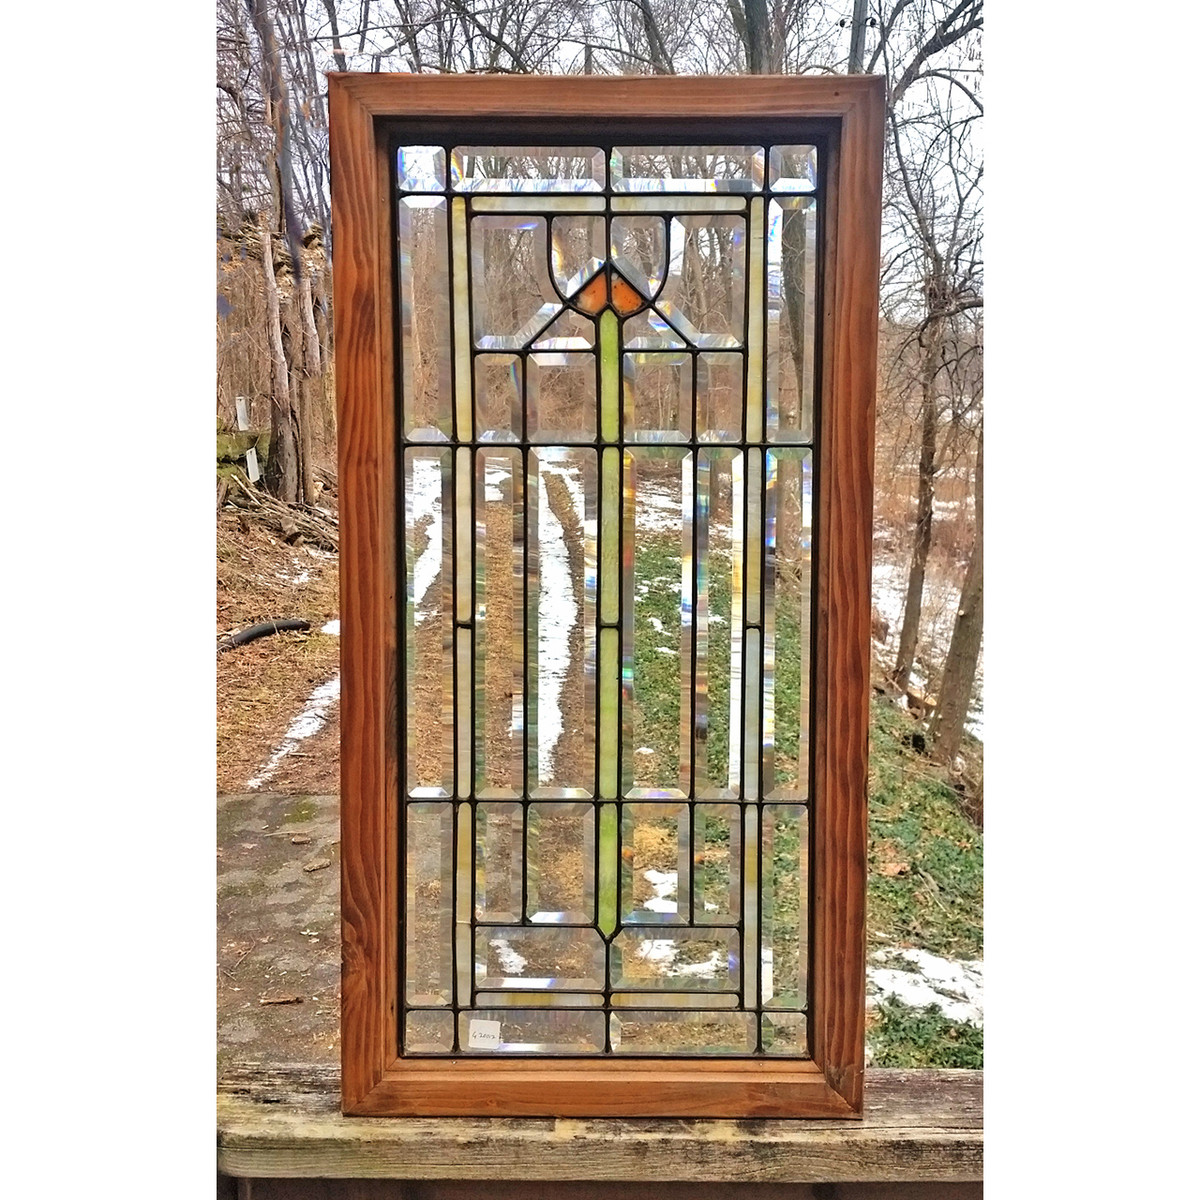 G20012  - Antique Stained and Beveled Glass Window